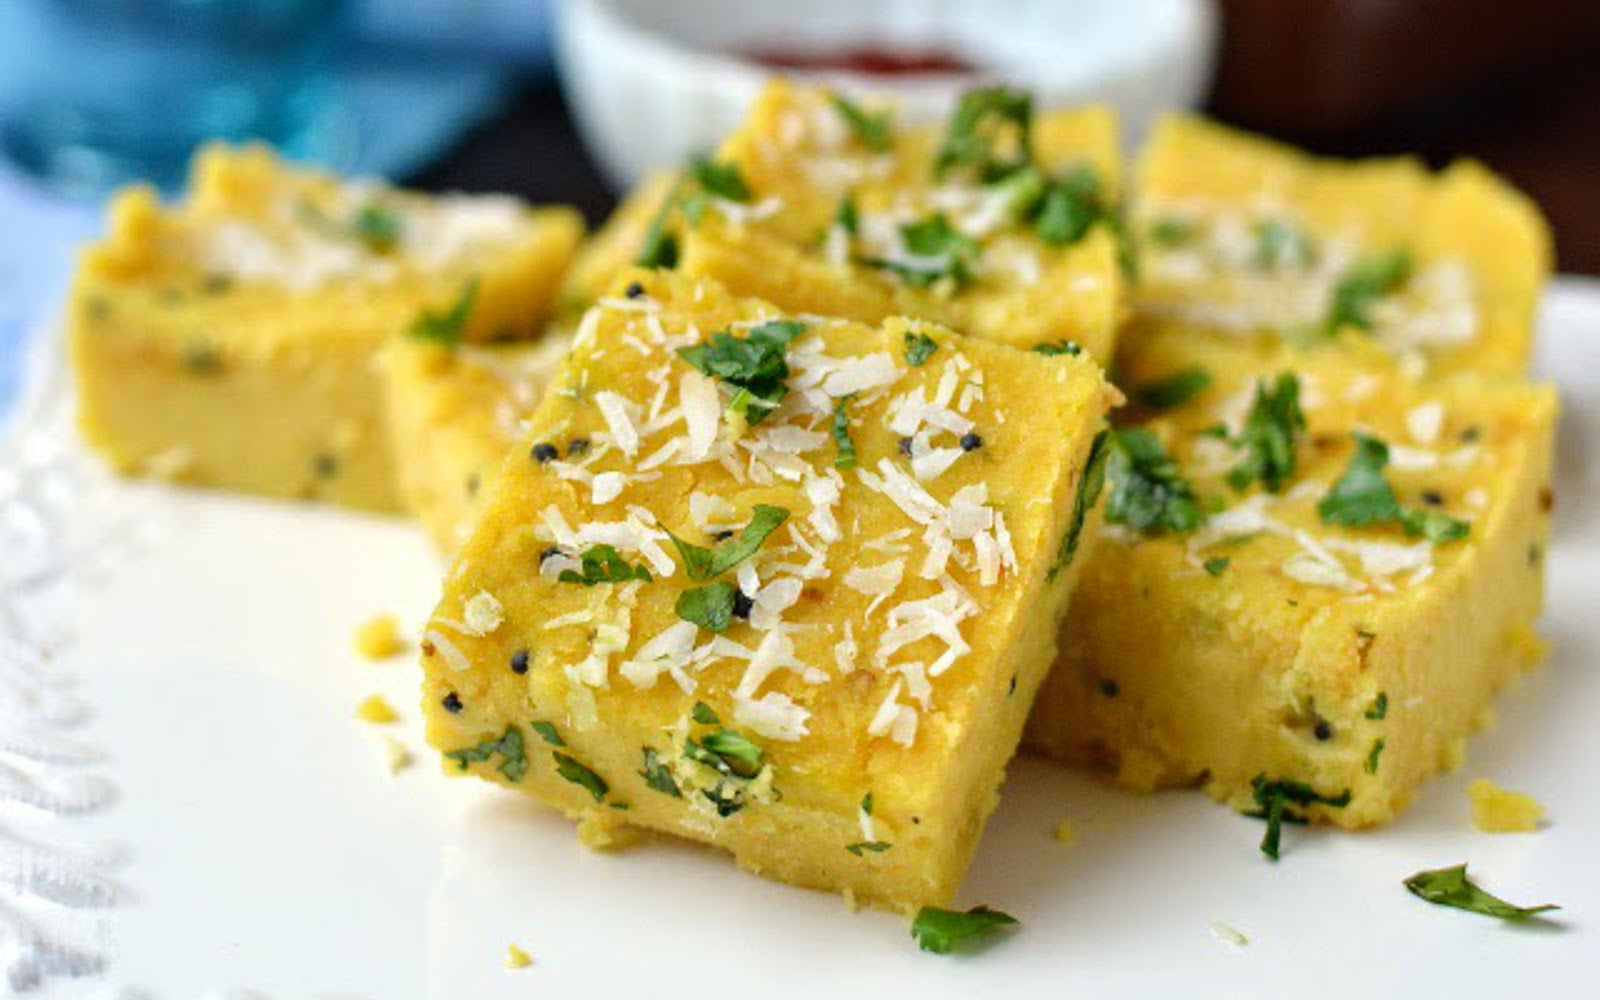 Amiri Khaman: North Indian Chickpea Squares